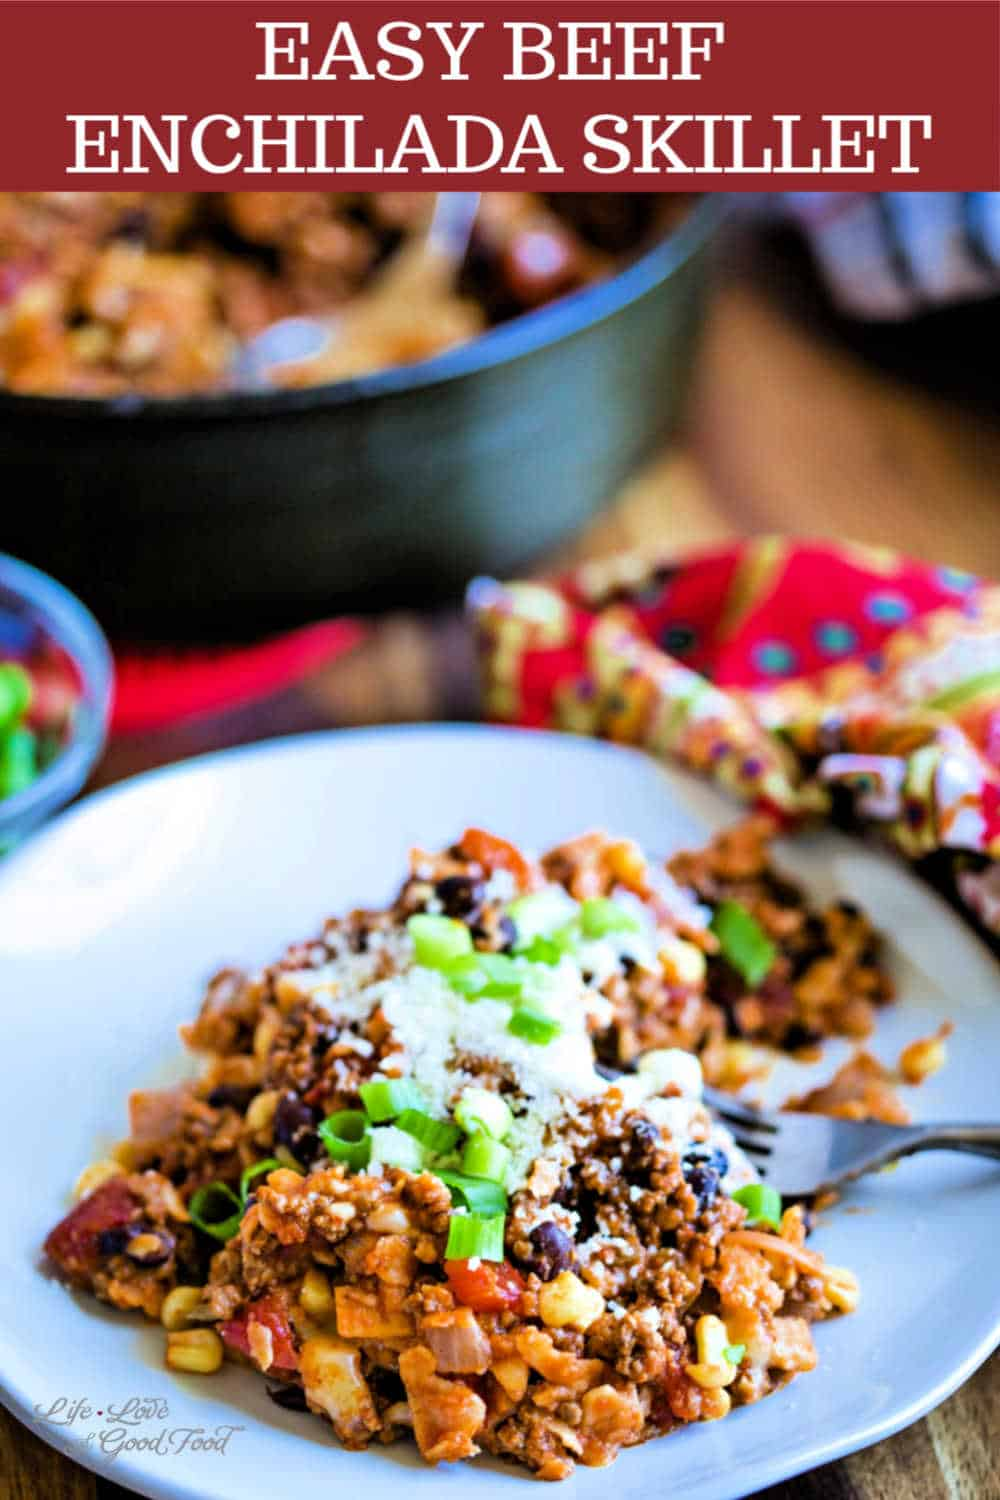 Easy Beef Enchilada Skillet made with ground beef, corn tortillas, and red enchilada sauce is a tasty weeknight Mexican dinner your family will love. Ready in under 30 minutes, adding black beans and whole kernel corn to this stove top casserole makes this recipe a hearty and delicious meal.